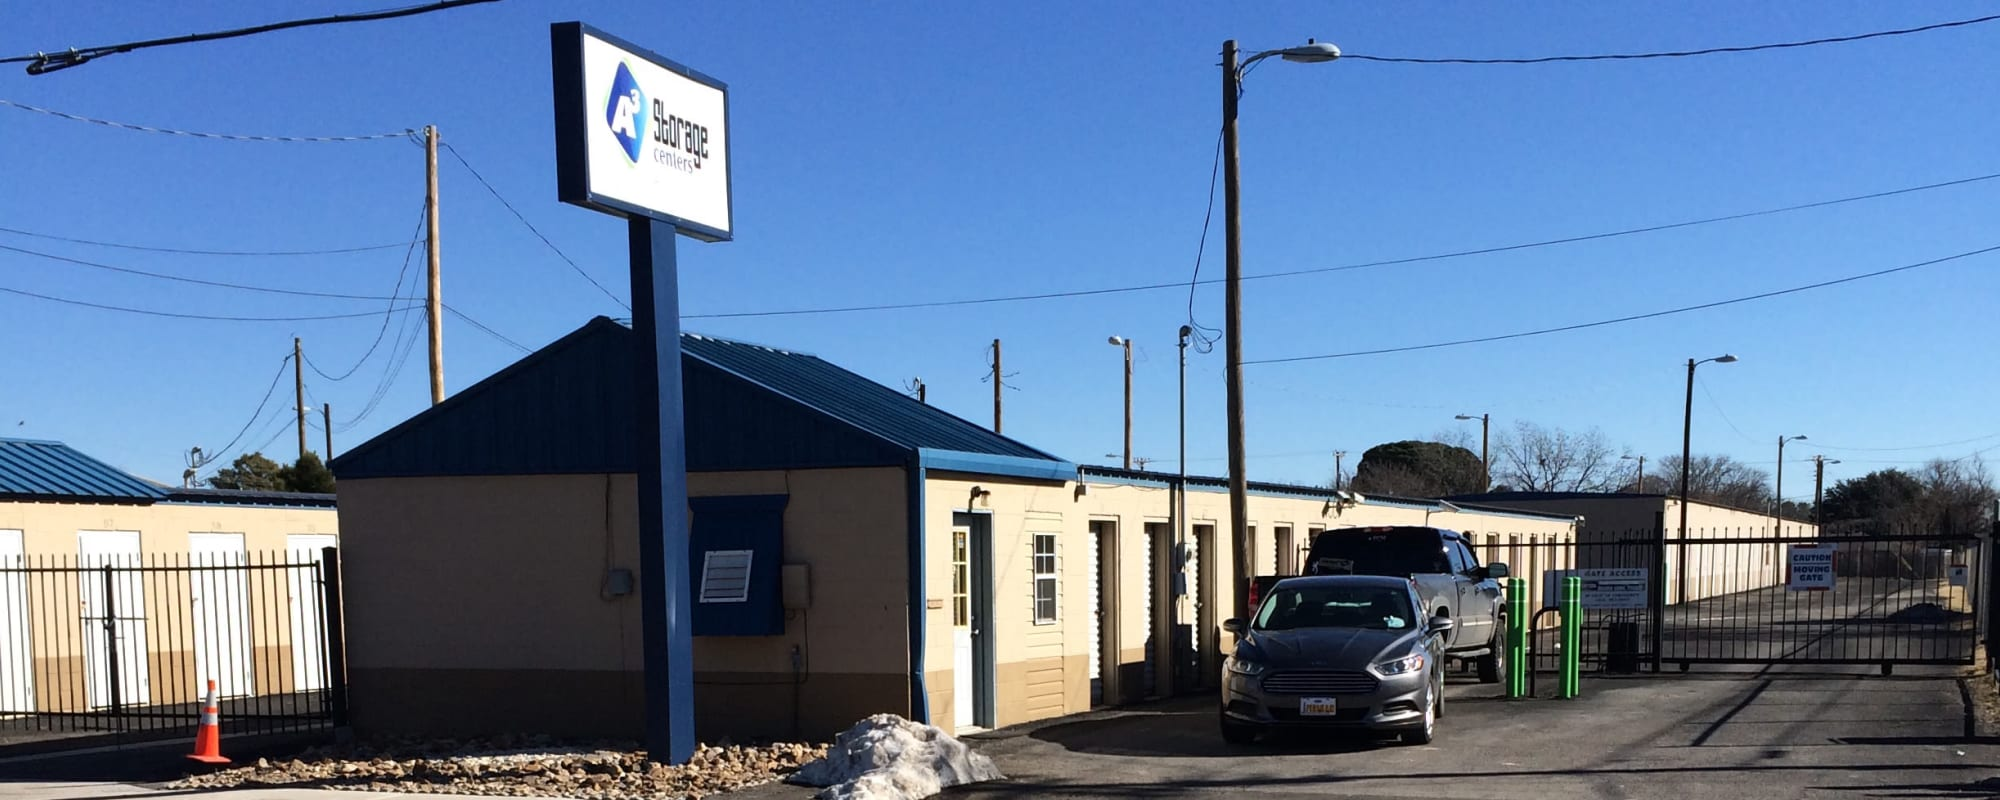 Self storage at A3 Storage Centers in Hobbs, New Mexico